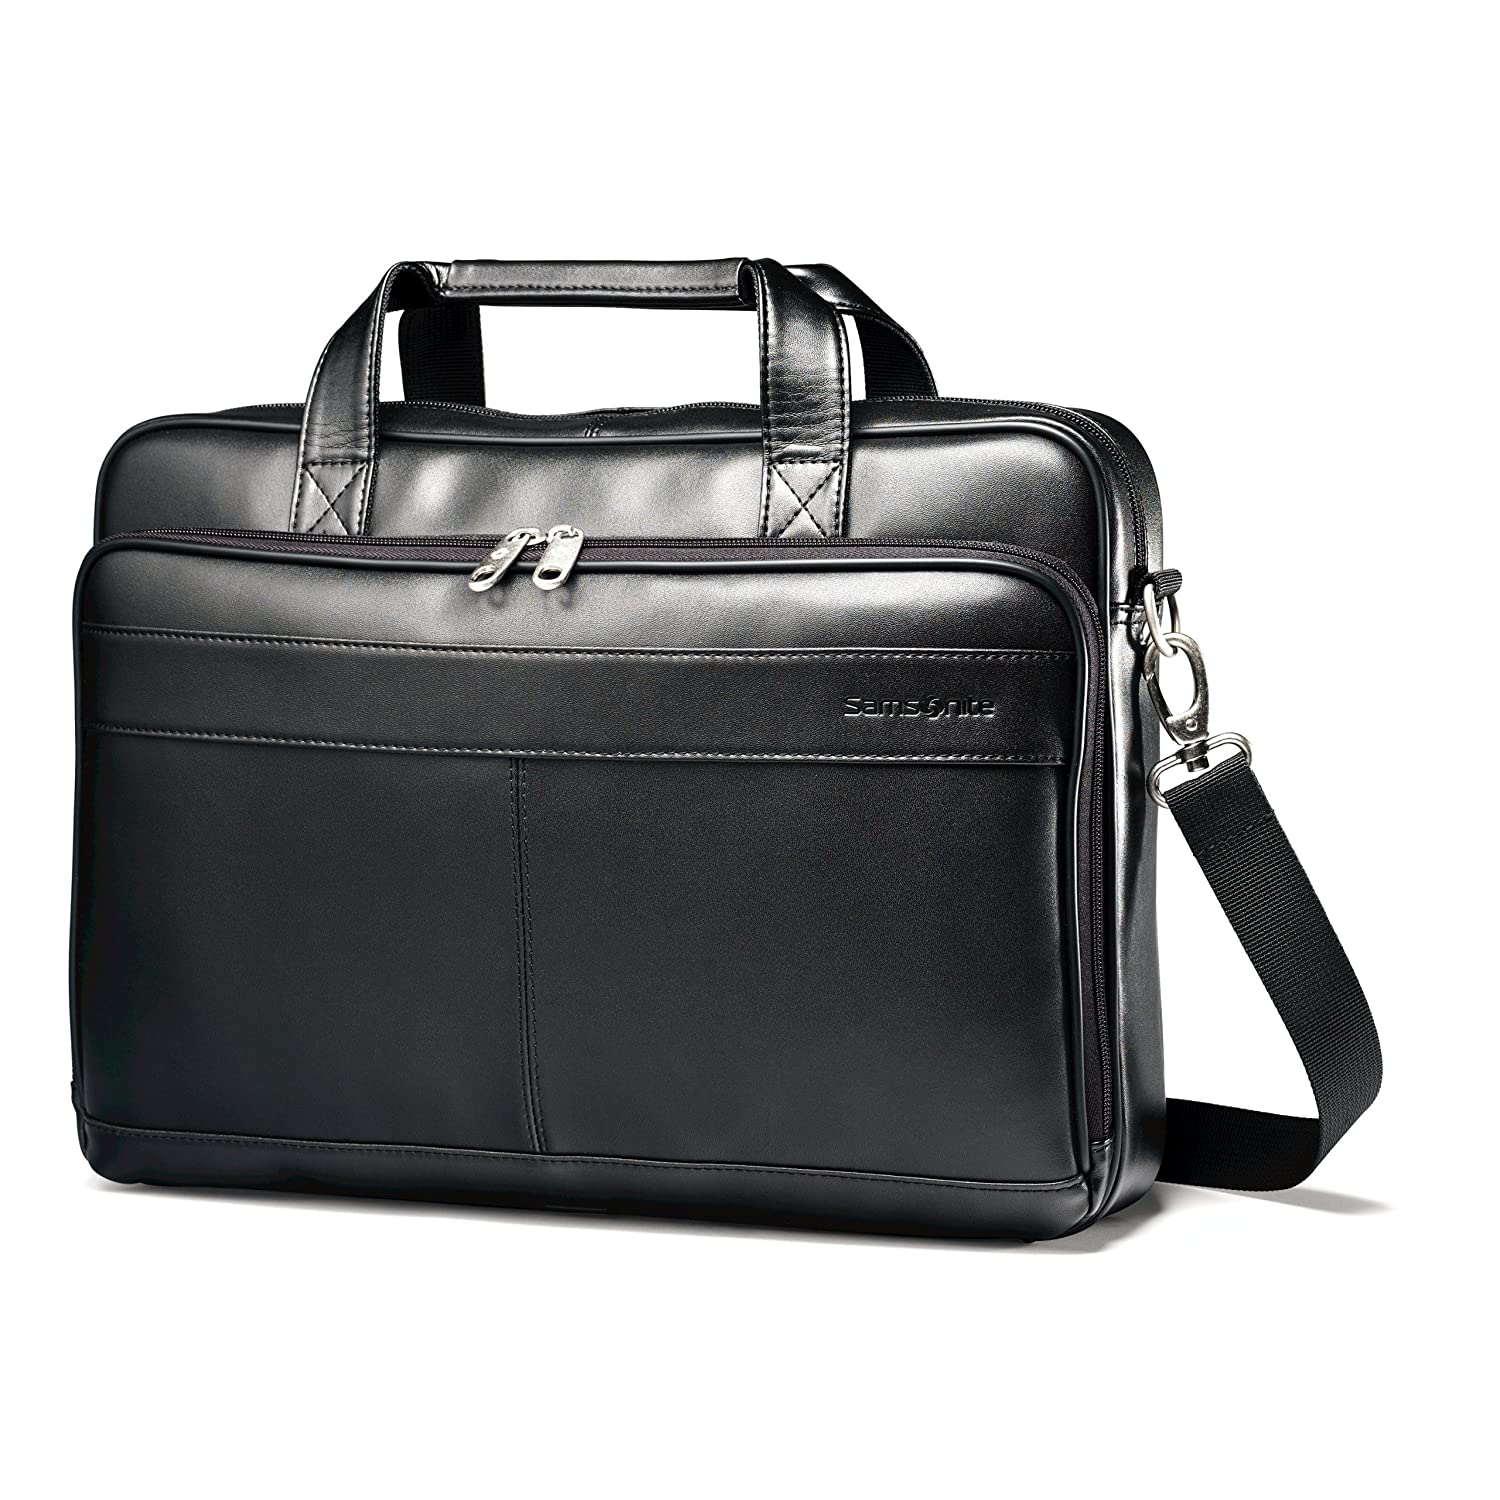 Samsonite Luggage Leather Slim Briefcase, Black, 16 Inch 48073